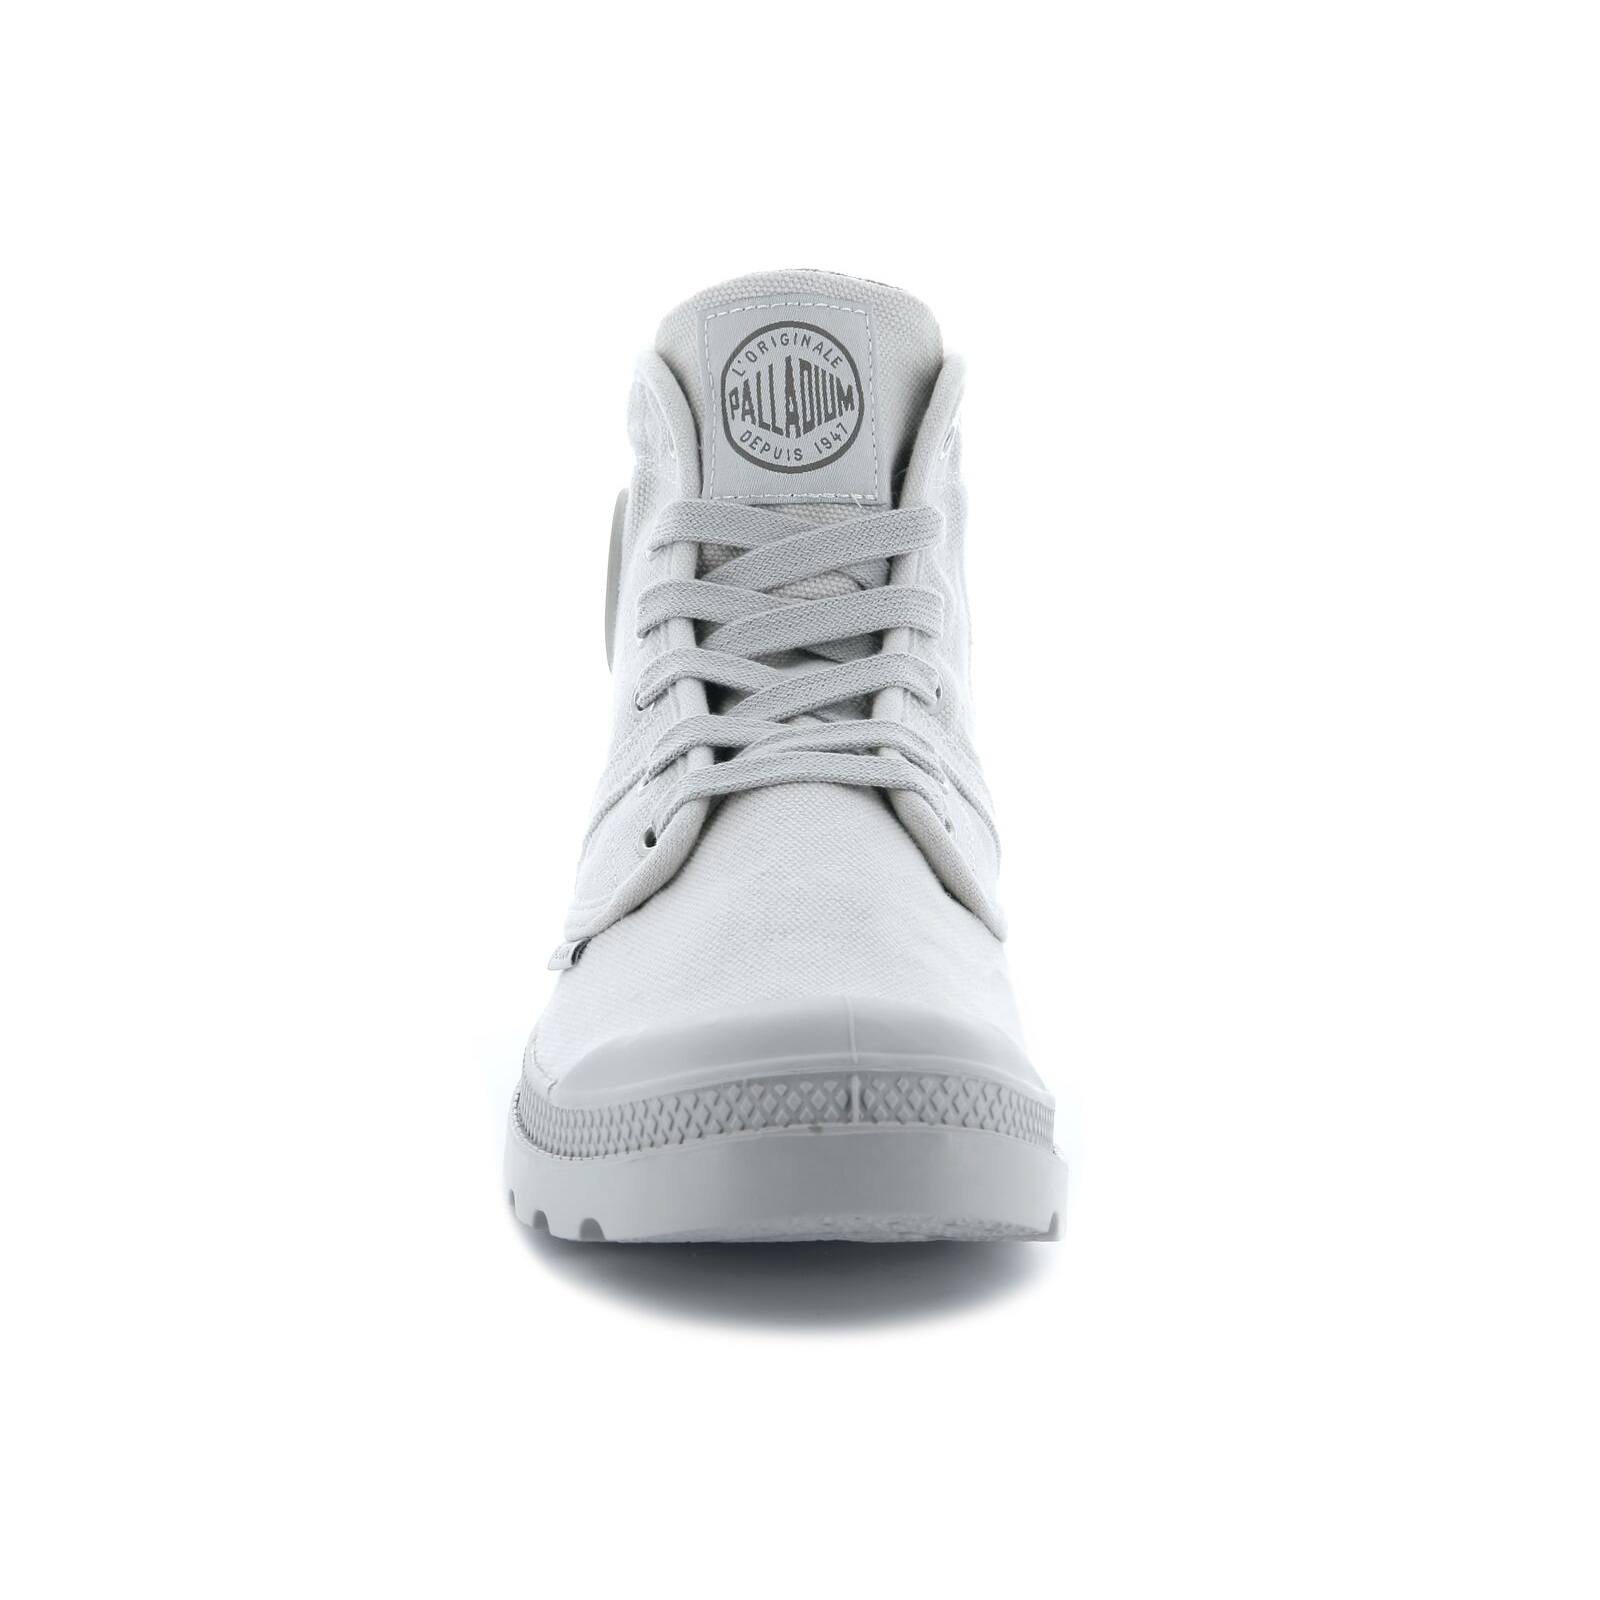 Palladium-Mens-Shoe-Pallabrouse-New-Designer-Walking-High-Top-Canvas-Ankle-Boots thumbnail 29